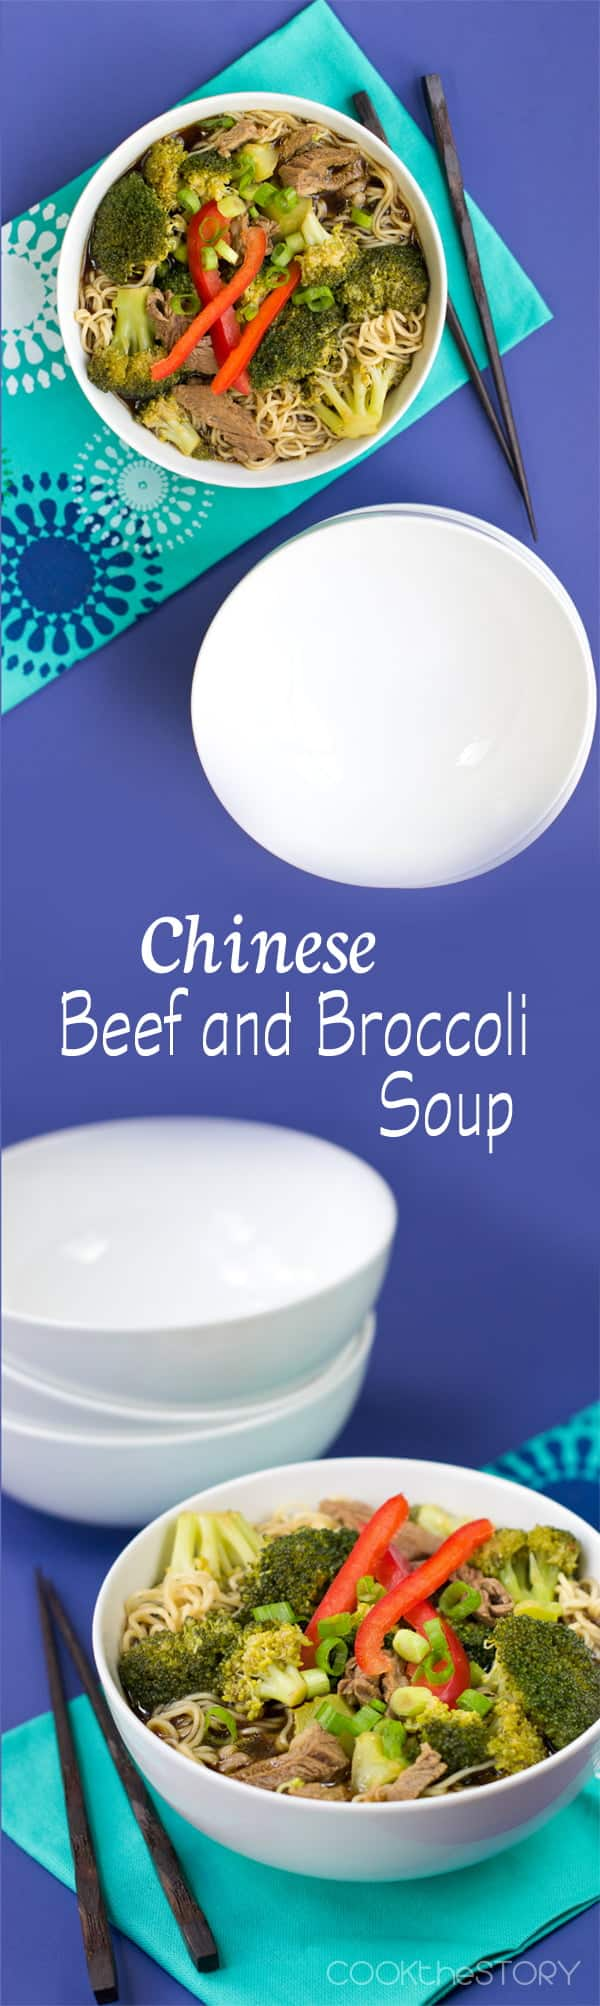 15-Minute Chinese Beef and Broccoli Soup